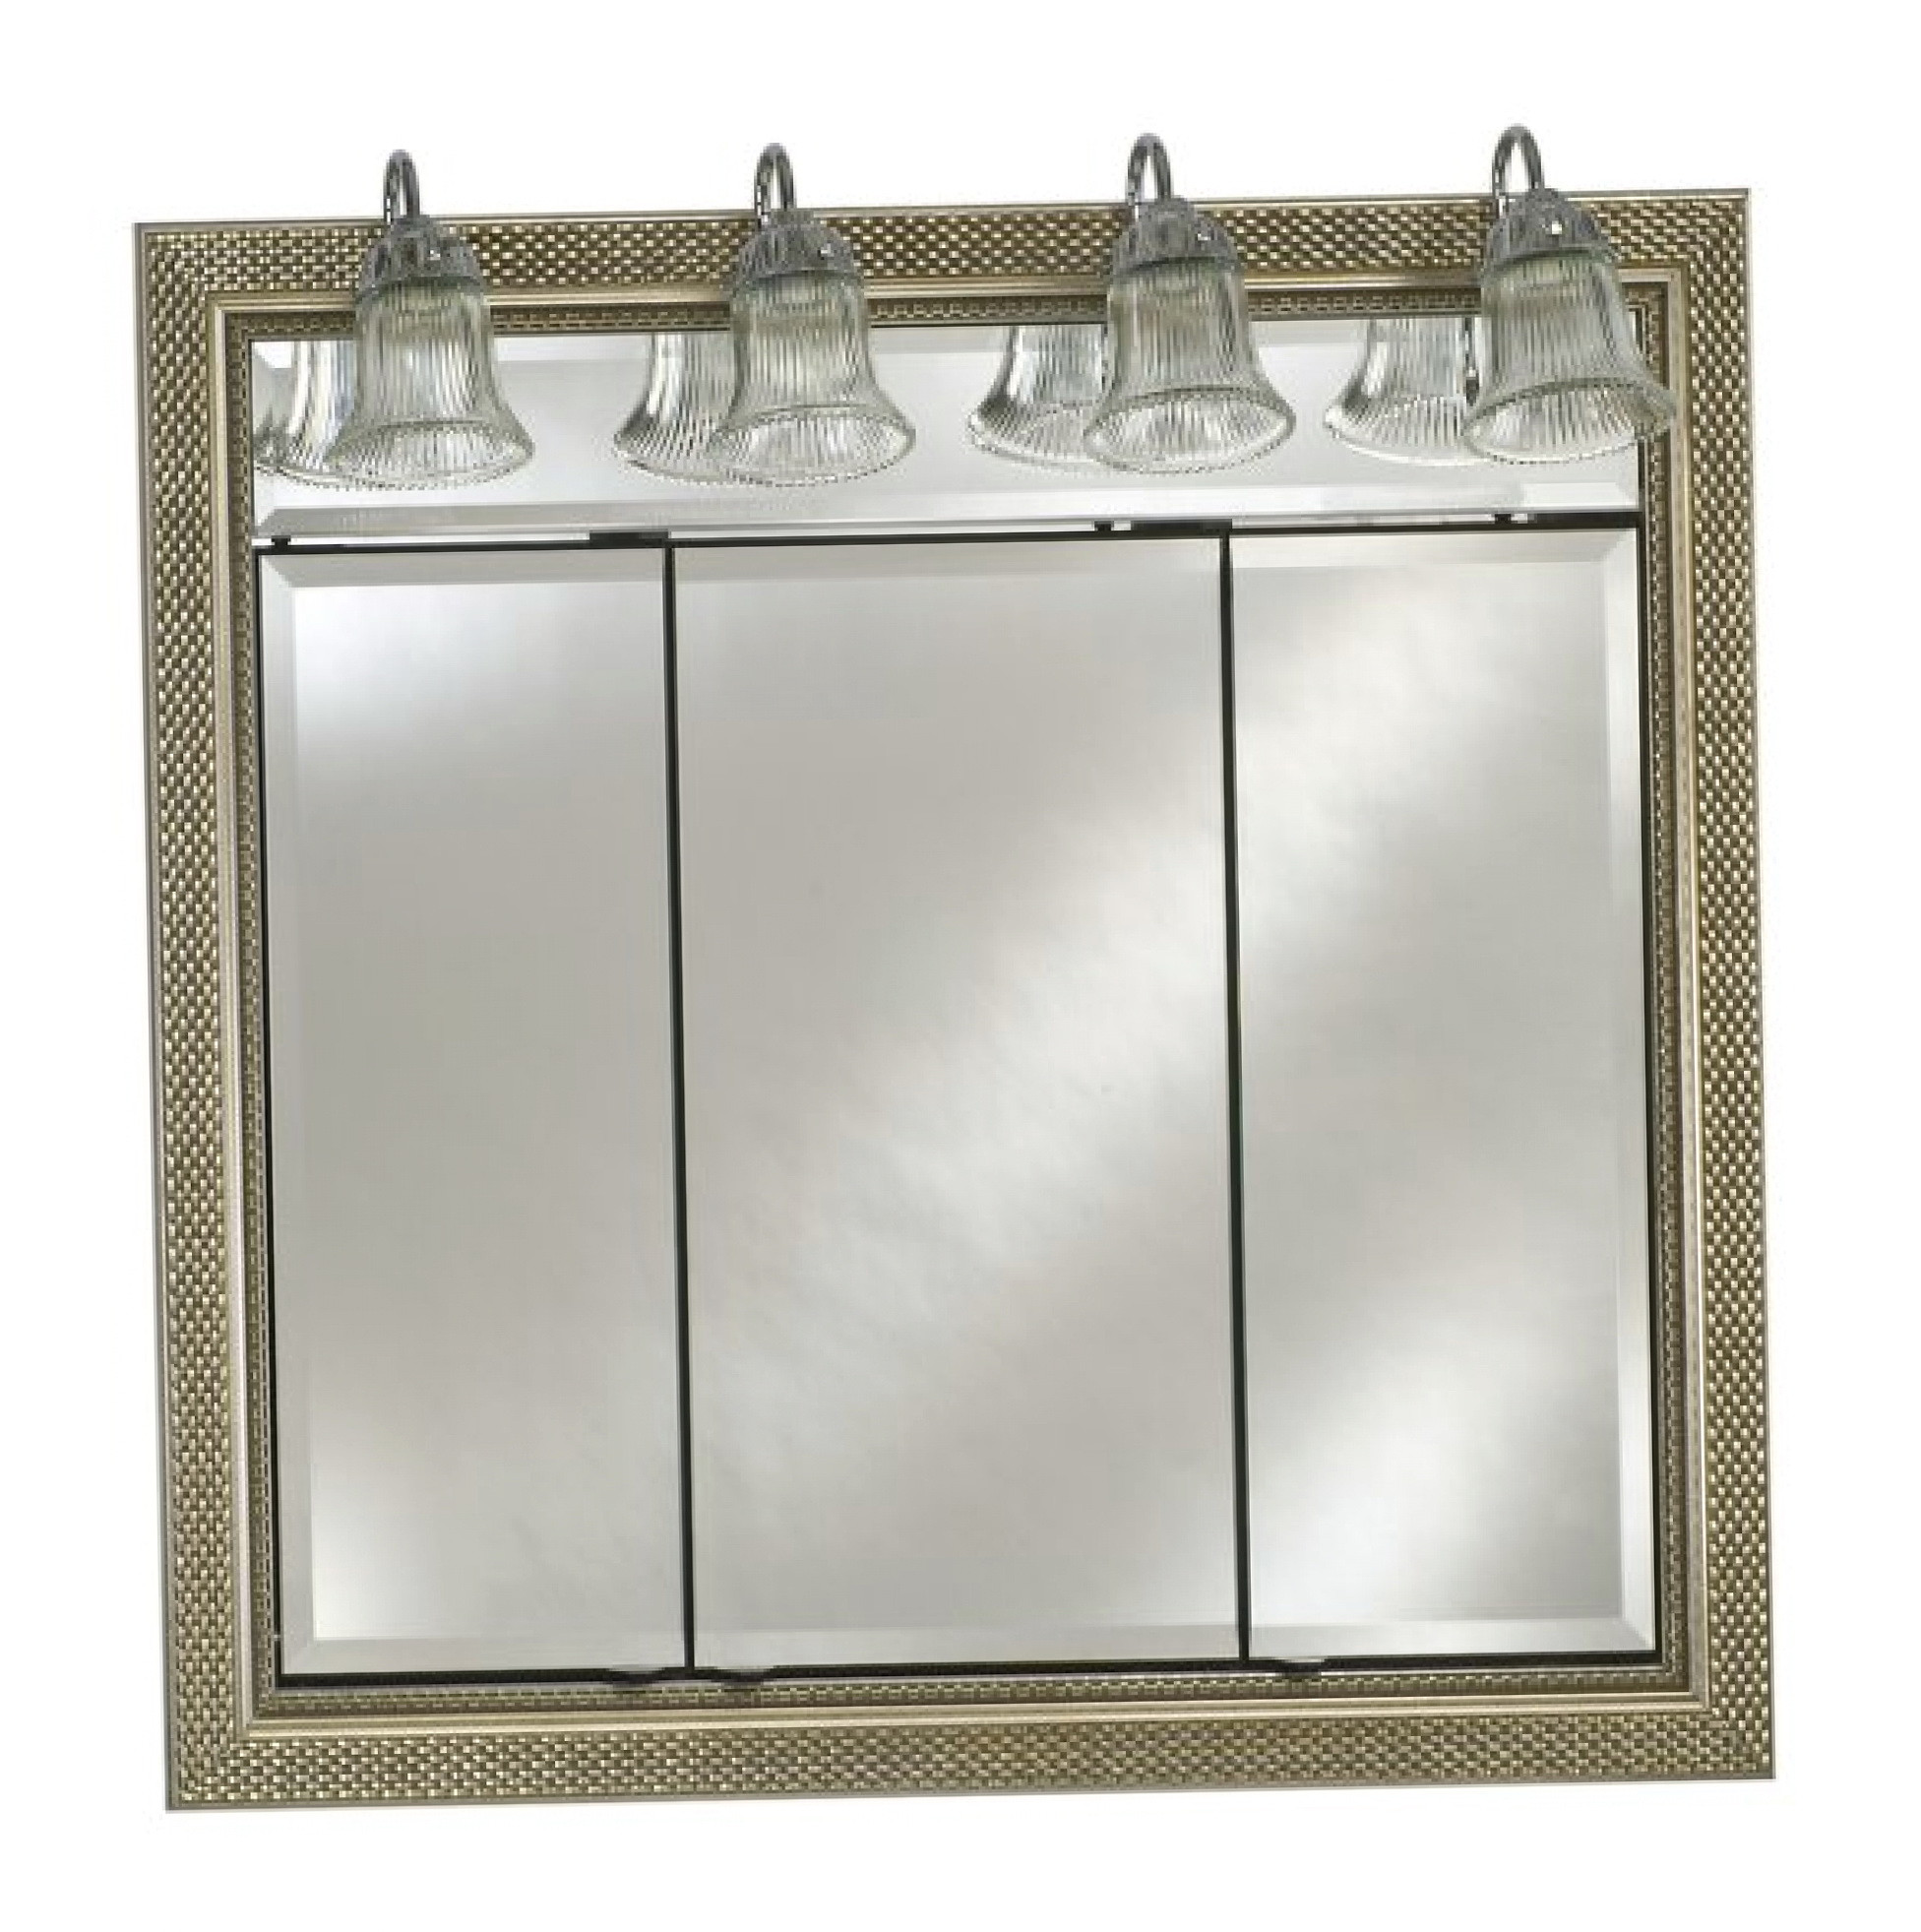 Best ideas about Lighted Medicine Cabinet . Save or Pin Lighted Medicine Cabinets Surface Mount Now.